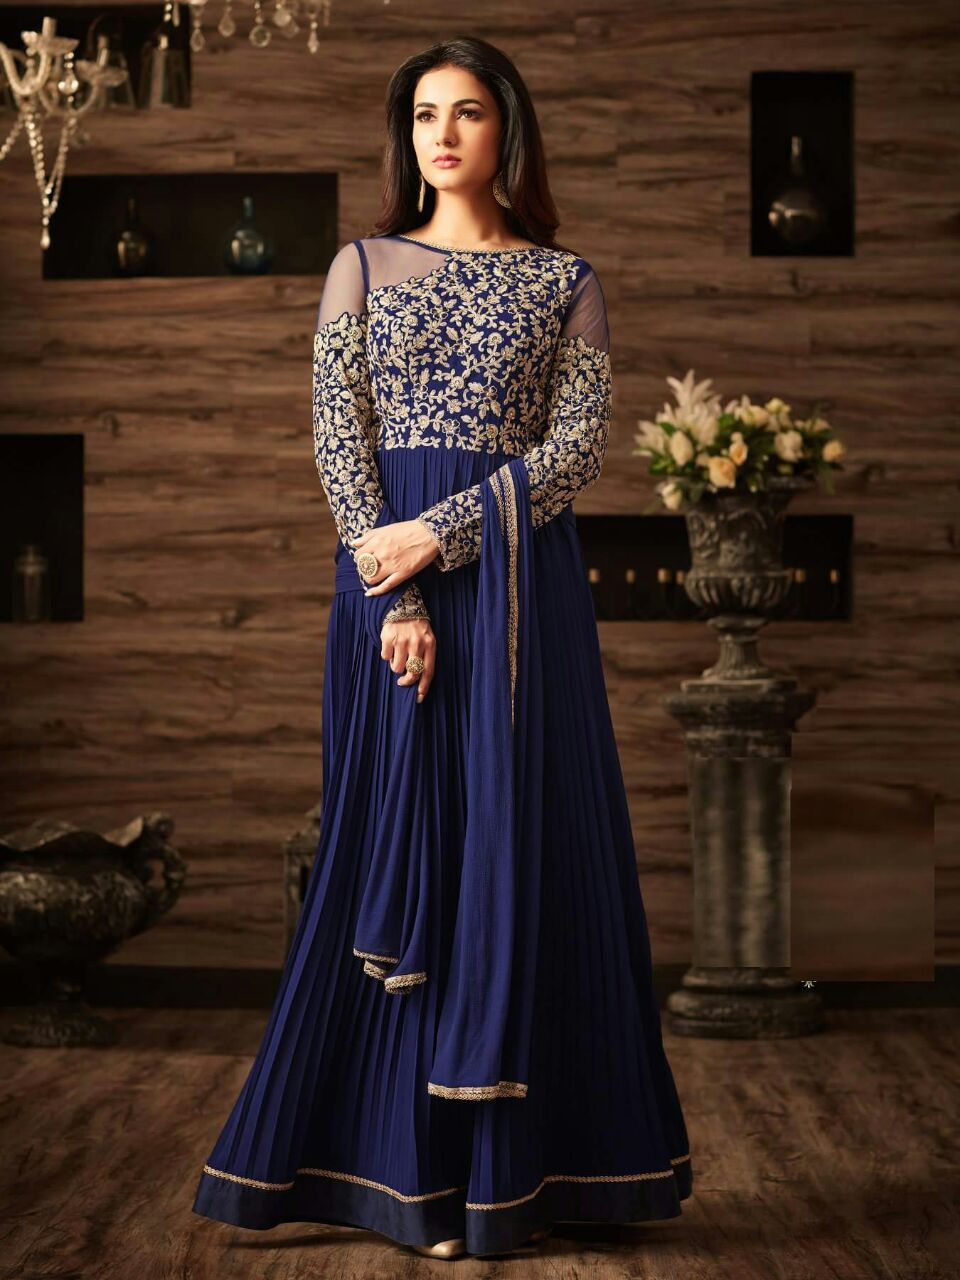 ROYAL BLUE MAXI